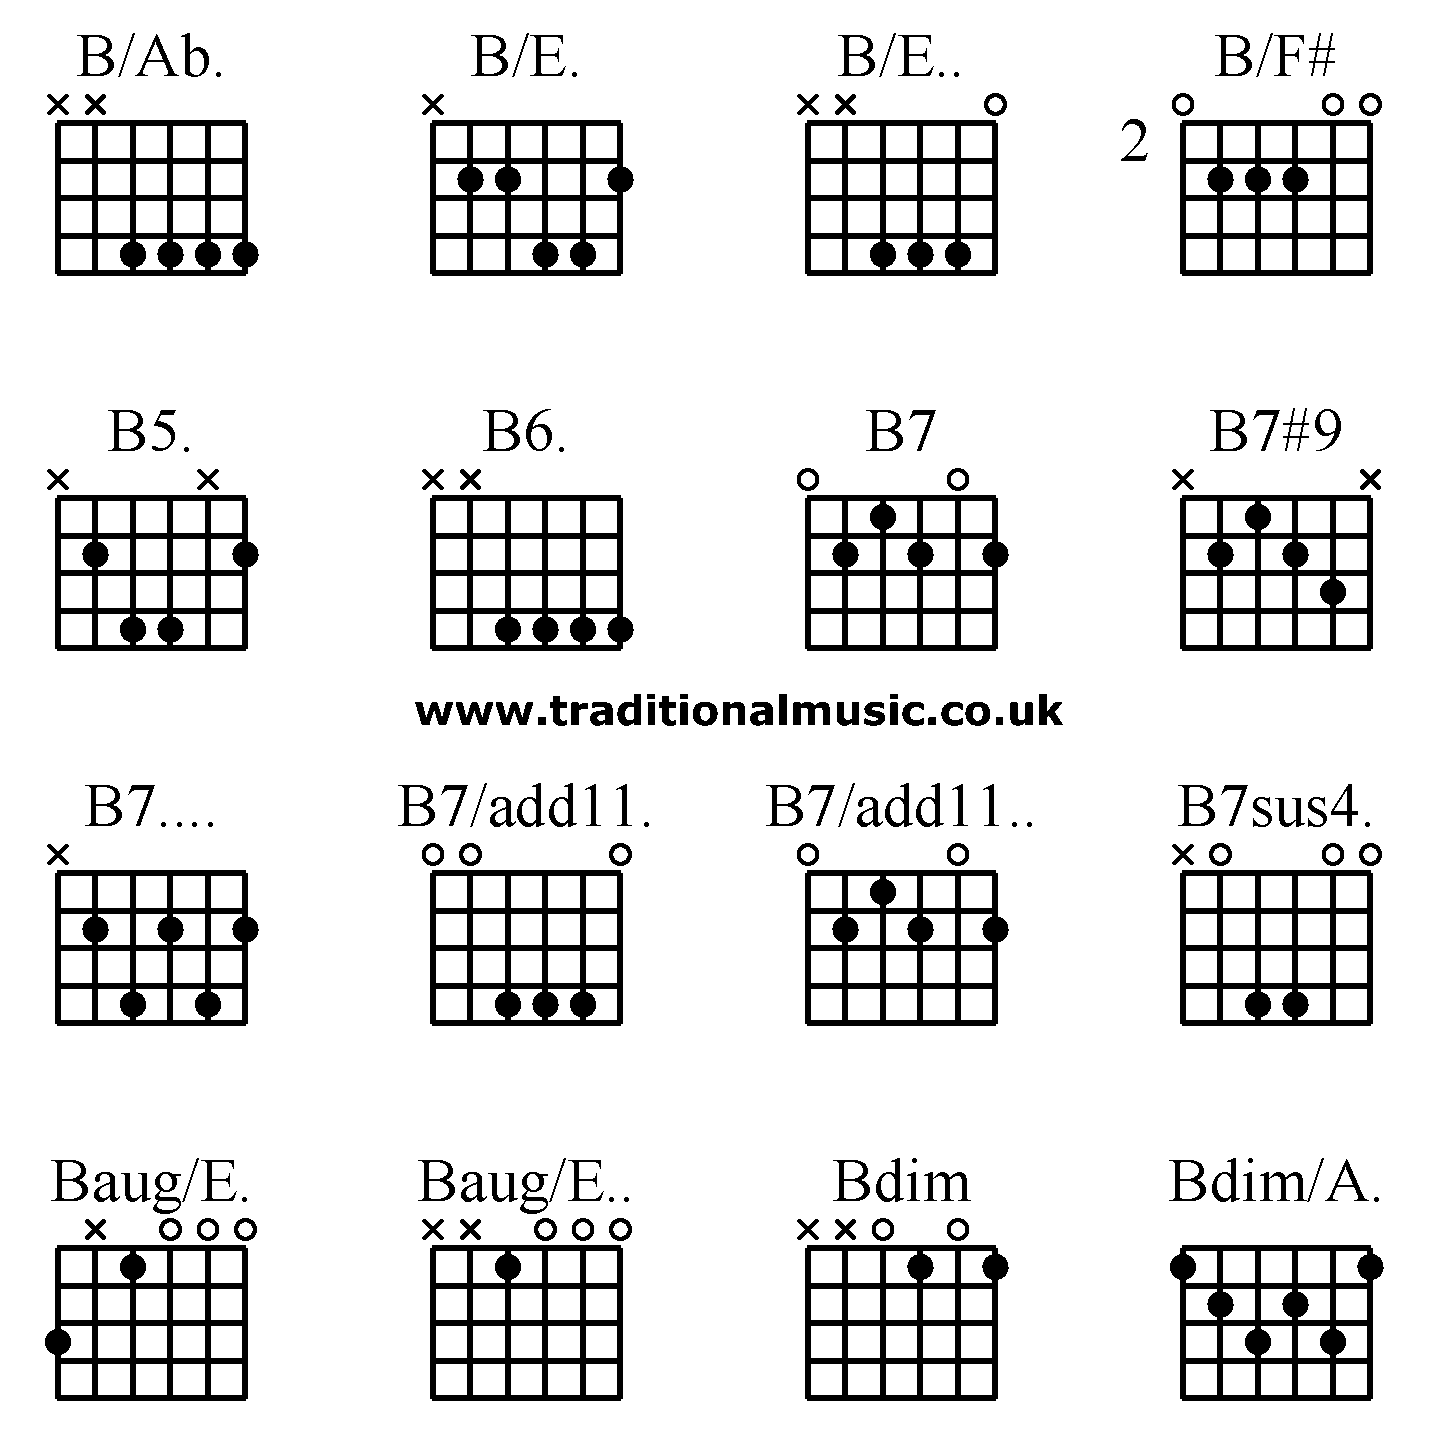 Guitar chords advanced - B/Ab. B/E. B/E. B/F#, B5. B6. B7 B7#9, B7. B7/add11. B7/add11. B7sus4 ...